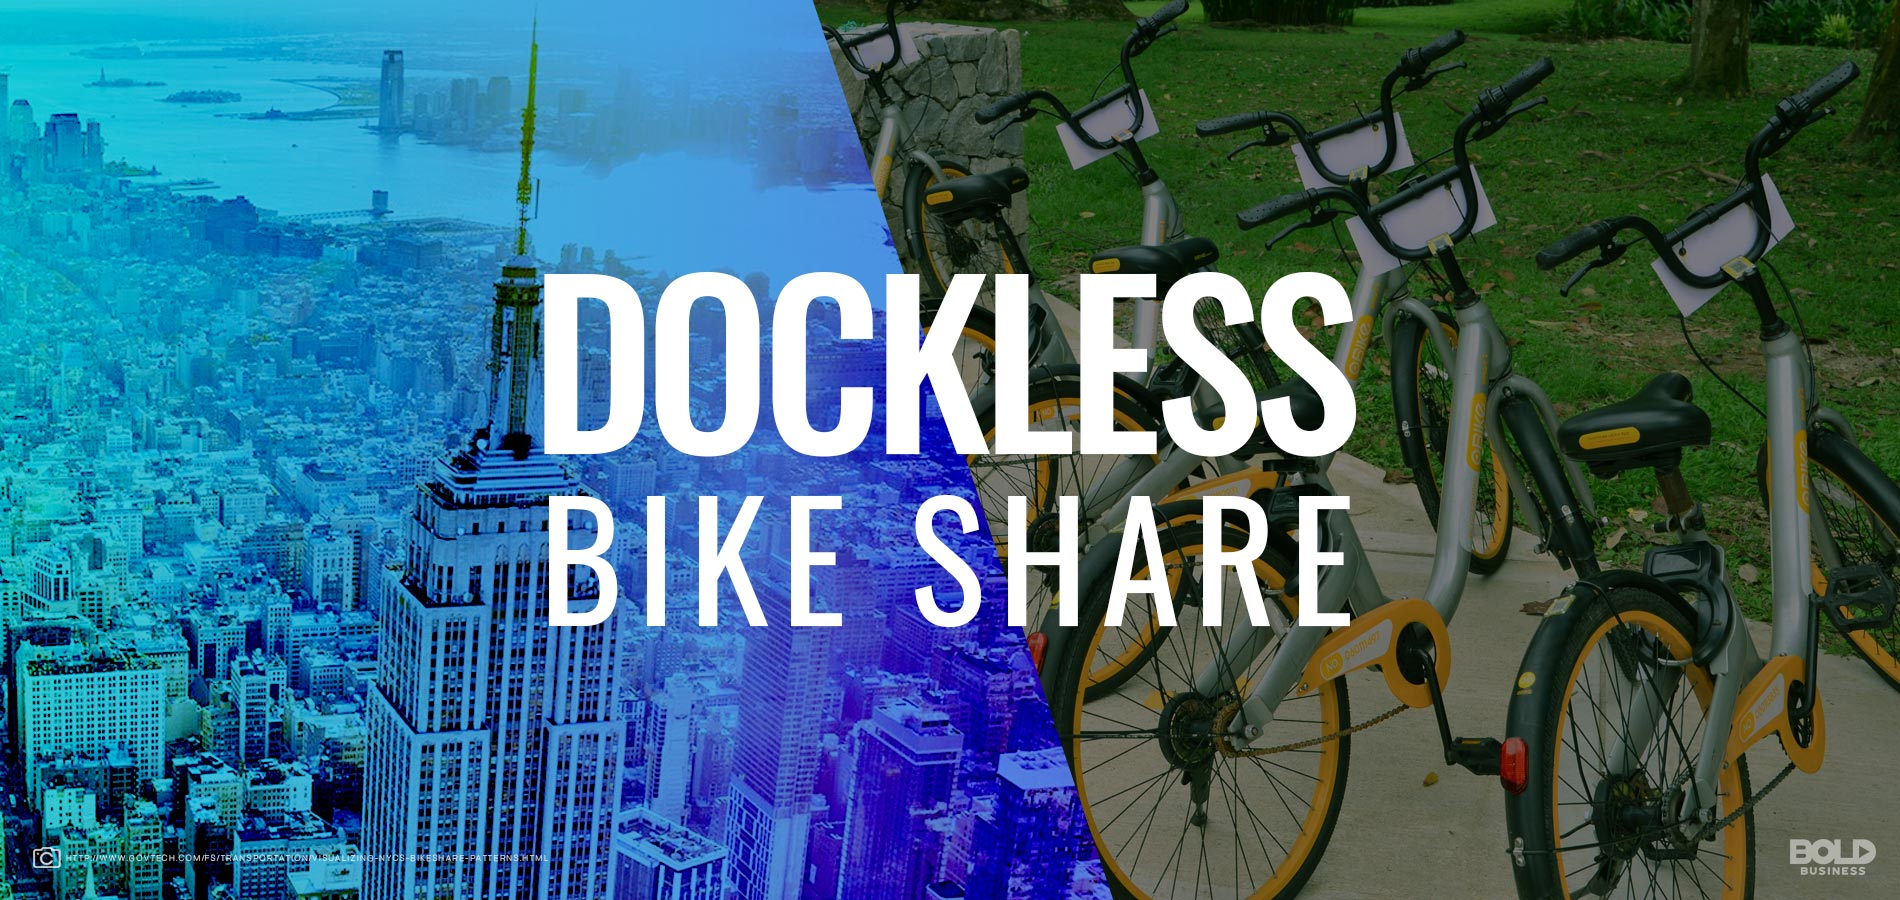 The Big Apple Catching up with the Dockless Bike Share Trend